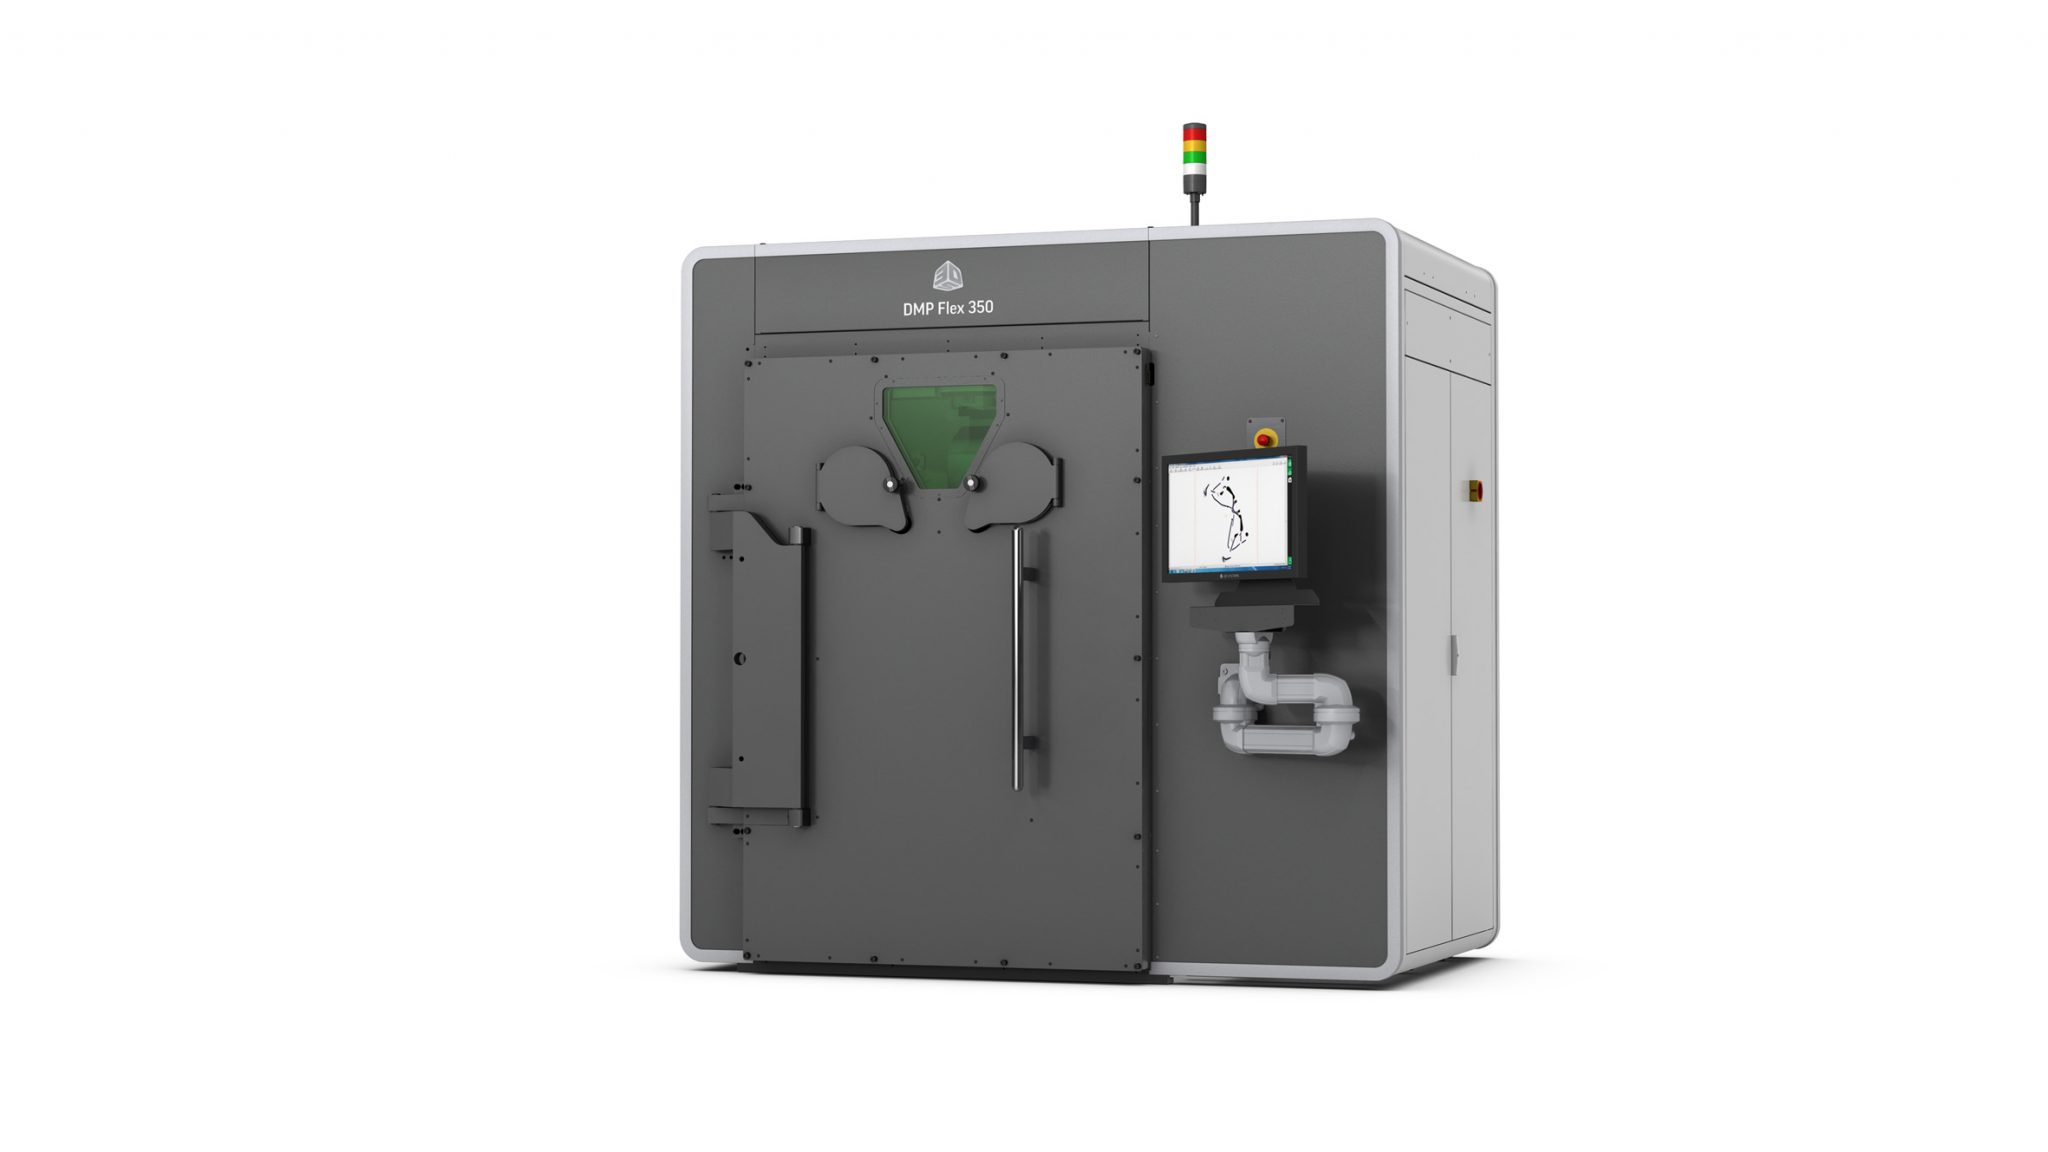 3D Systems DMP Flex 350 metal 3D printer for 24/7 part production and flexible application use. Photo via 3D Systems.